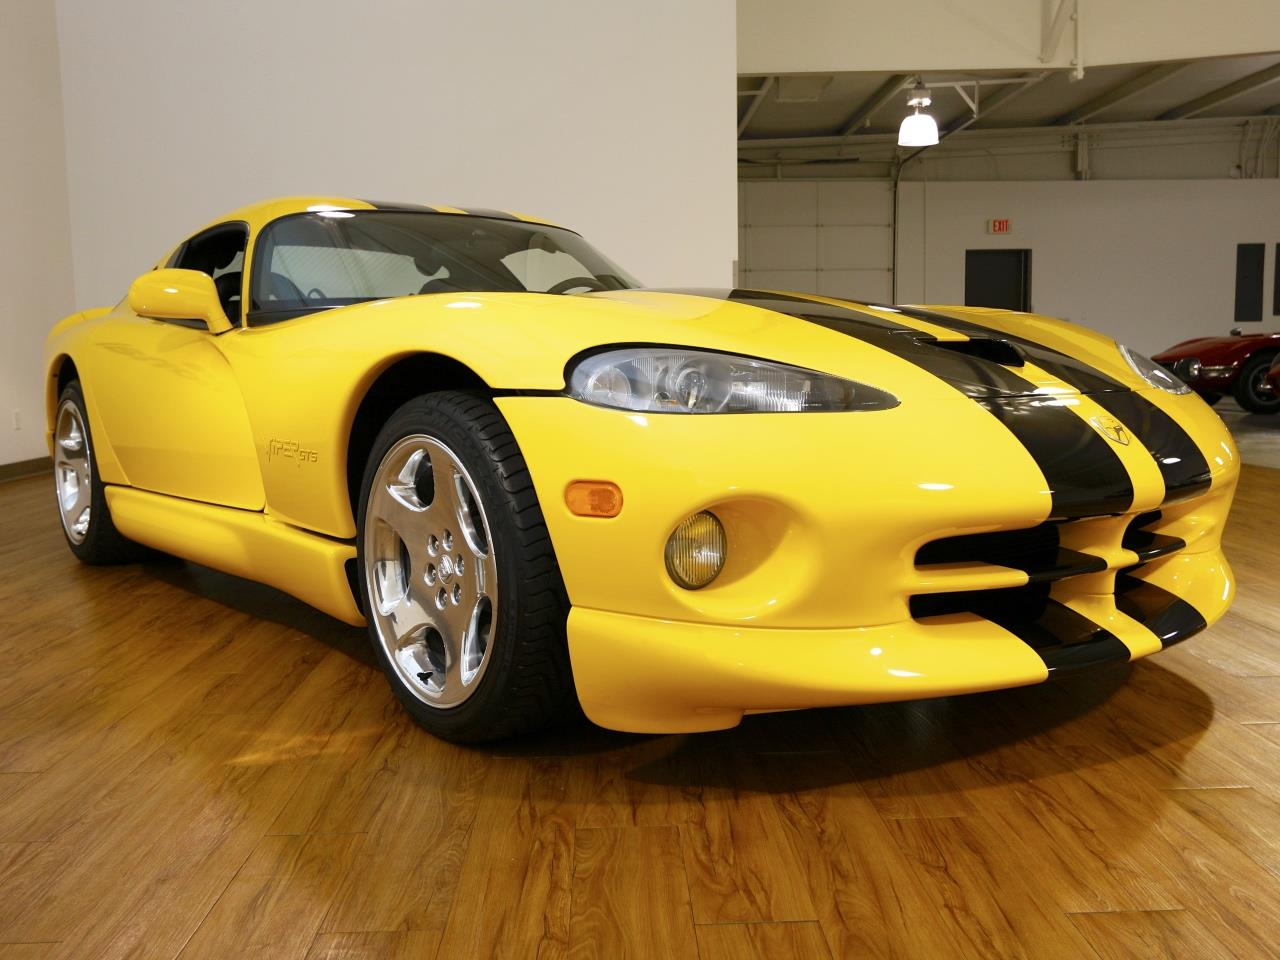 dodge viper yellow with 2001 Dodge Viper Gts on 22810 2006 yamaha banshee 350cc twin 2   stroke special edition 50th moreover Dodgetomahawkforsalesht wordpress in addition Maroon Bells Colorado Mount River 11987 moreover Lamborghini Blue Flame Wallpaper besides Sema Car Pornography.